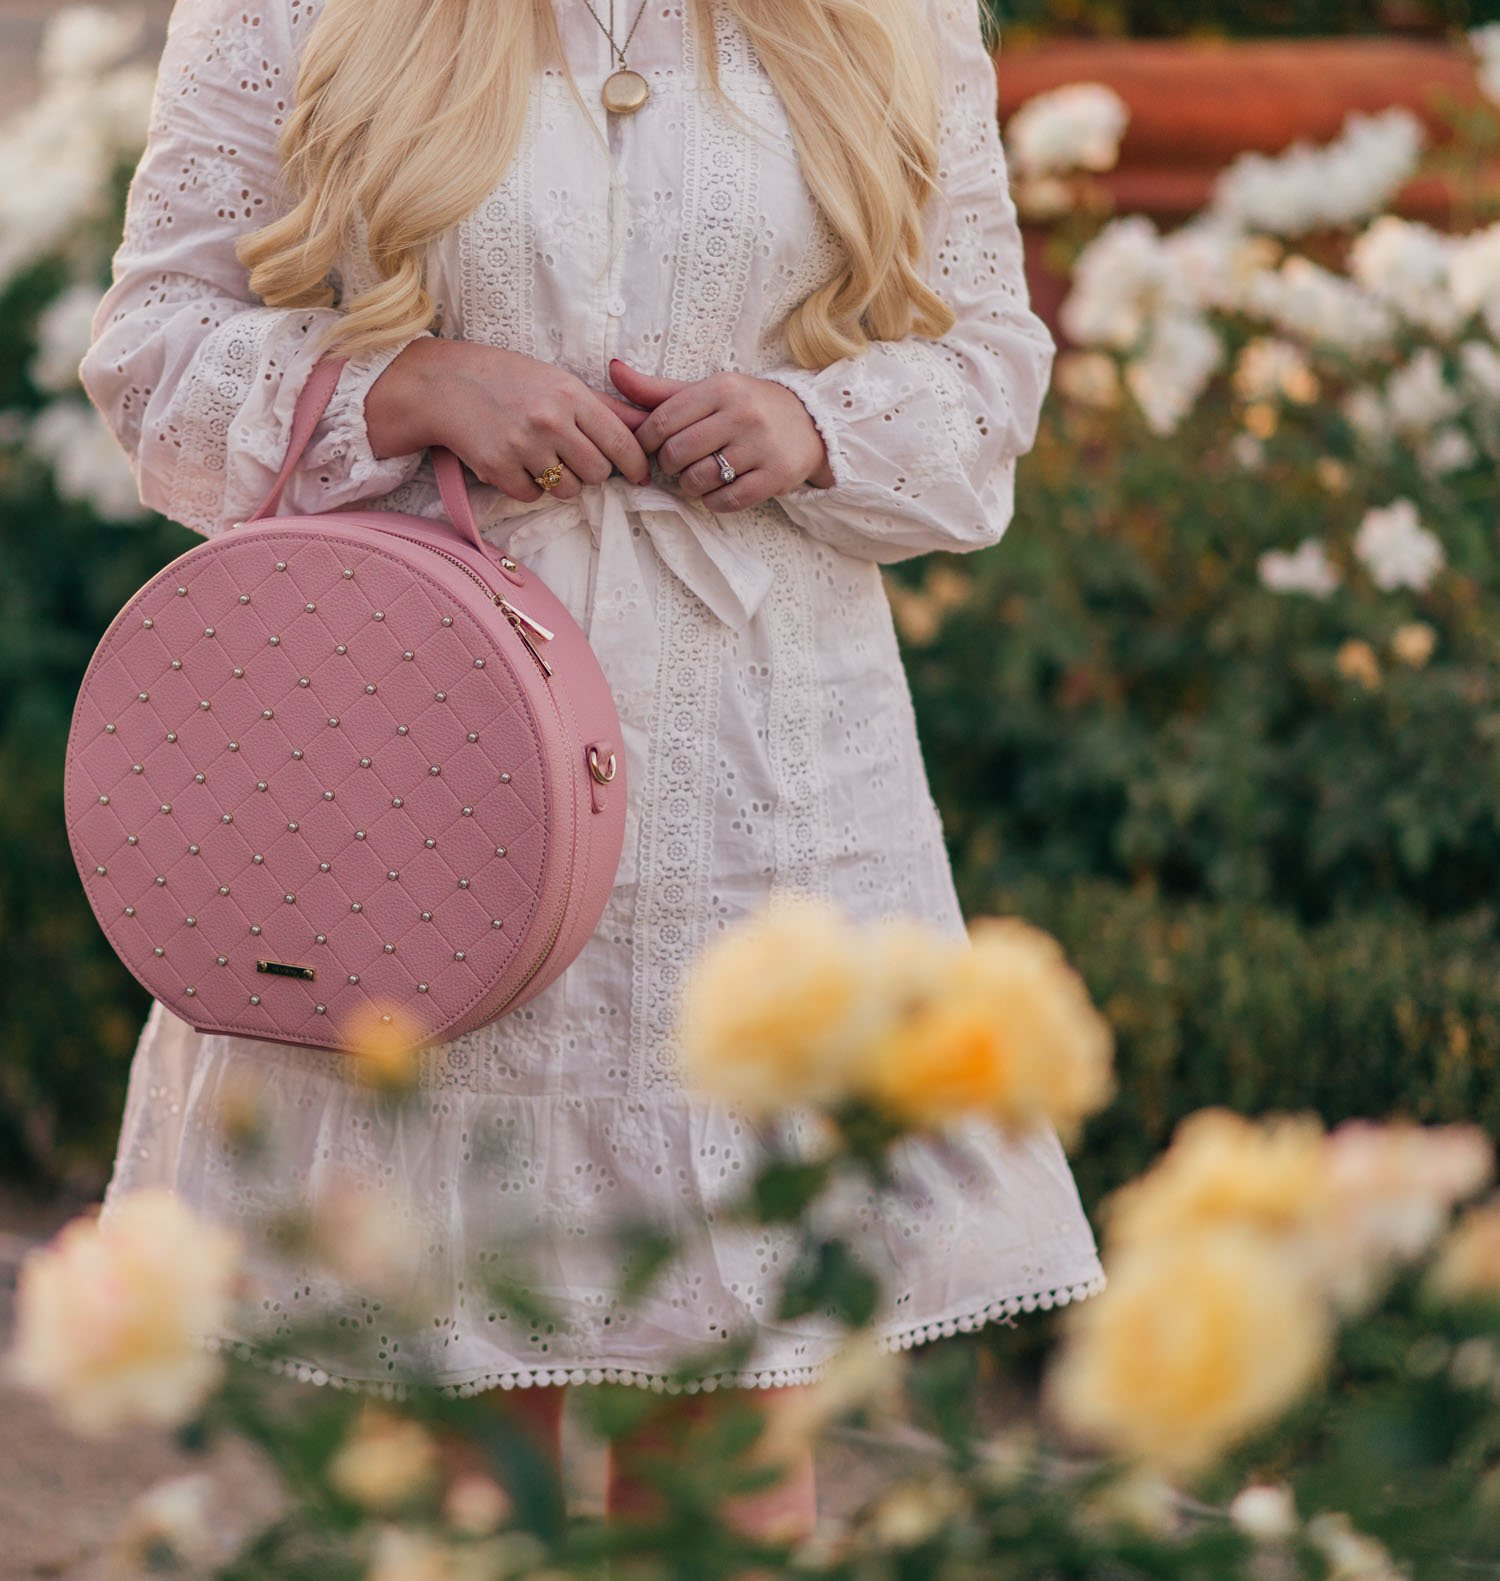 Fashion Blogger Elizabeth Hugen of Lizzie in Lace shares her girly handbag collection including this pink pearl handbag